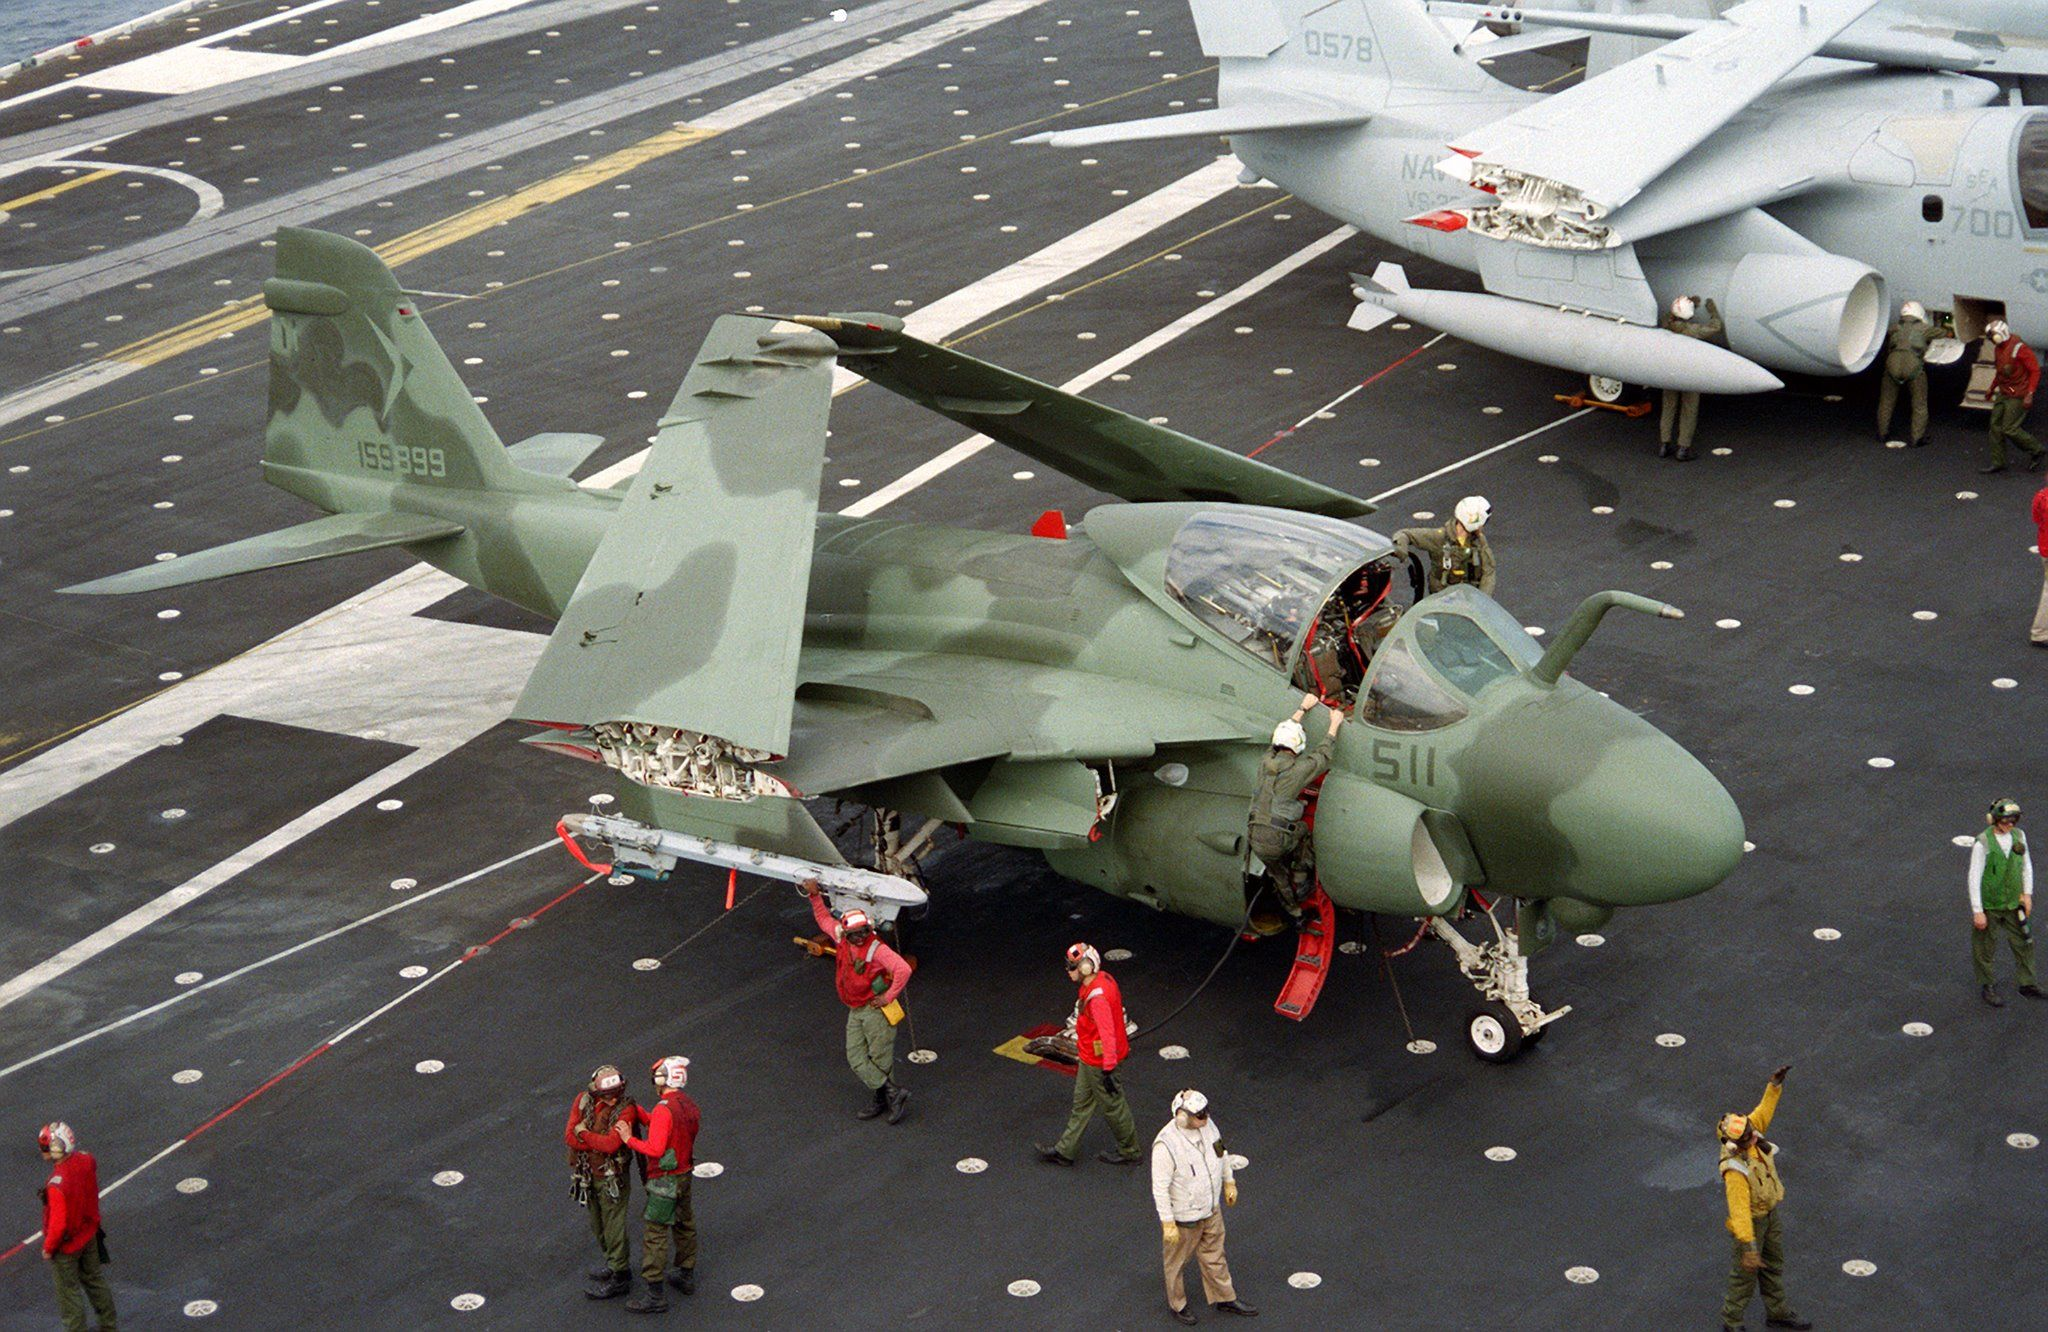 A rare photo pf an A-6E Intruder in green camouflage on the flight deck of the USS Constellation CV-64. This bird was assigned to VA-165, they were known as the Boomers